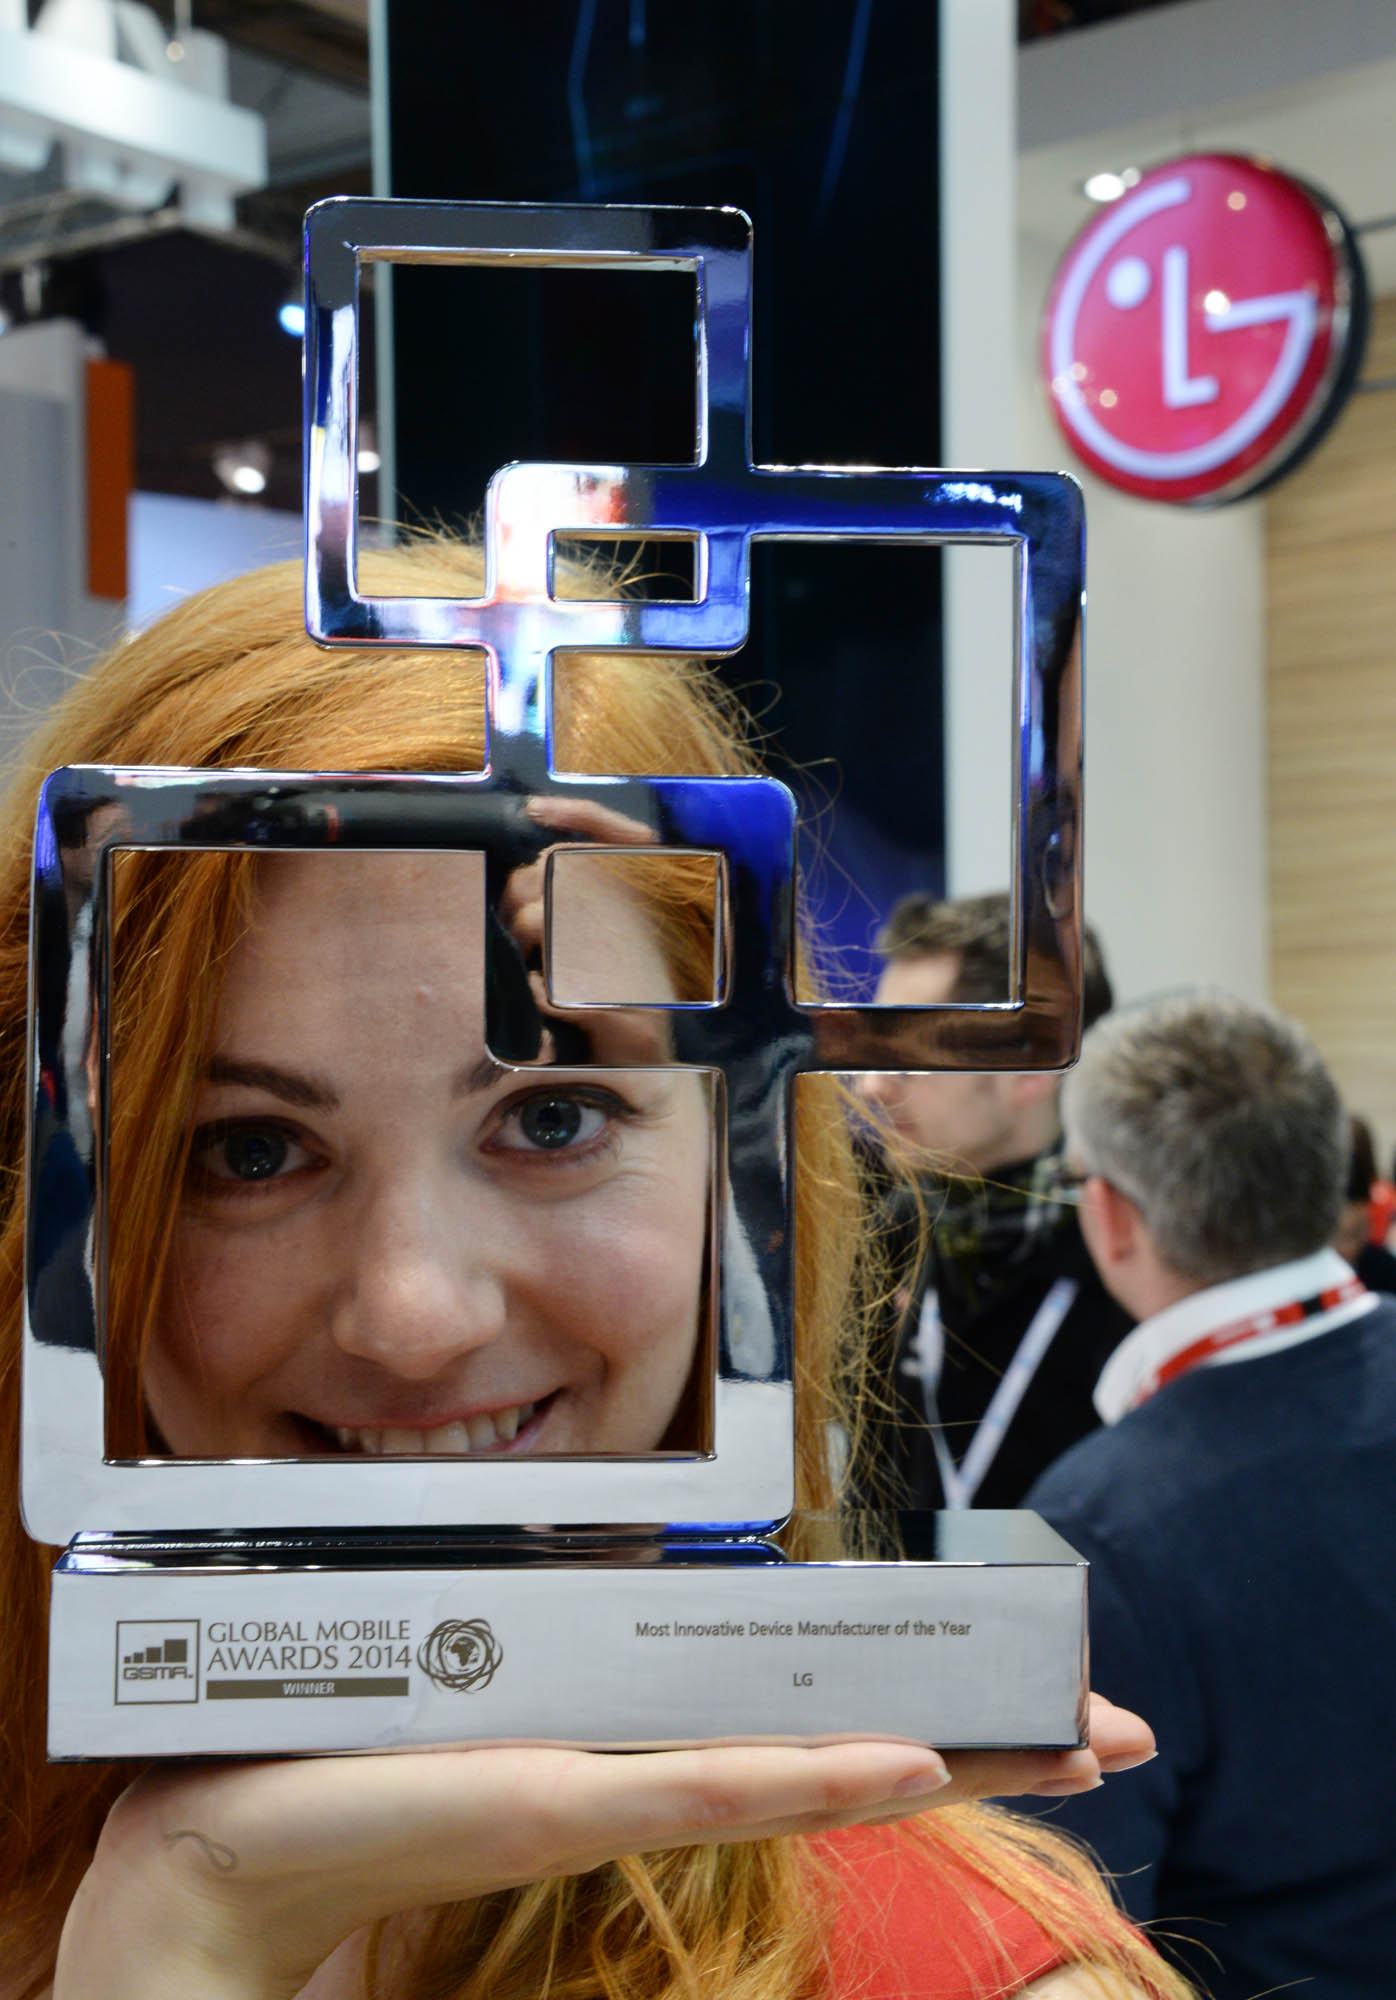 A female model is holding the trophy of the 'Most Innovative Device Manufacturer of the Year' by the GSMA at Mobile World Congress 2014.